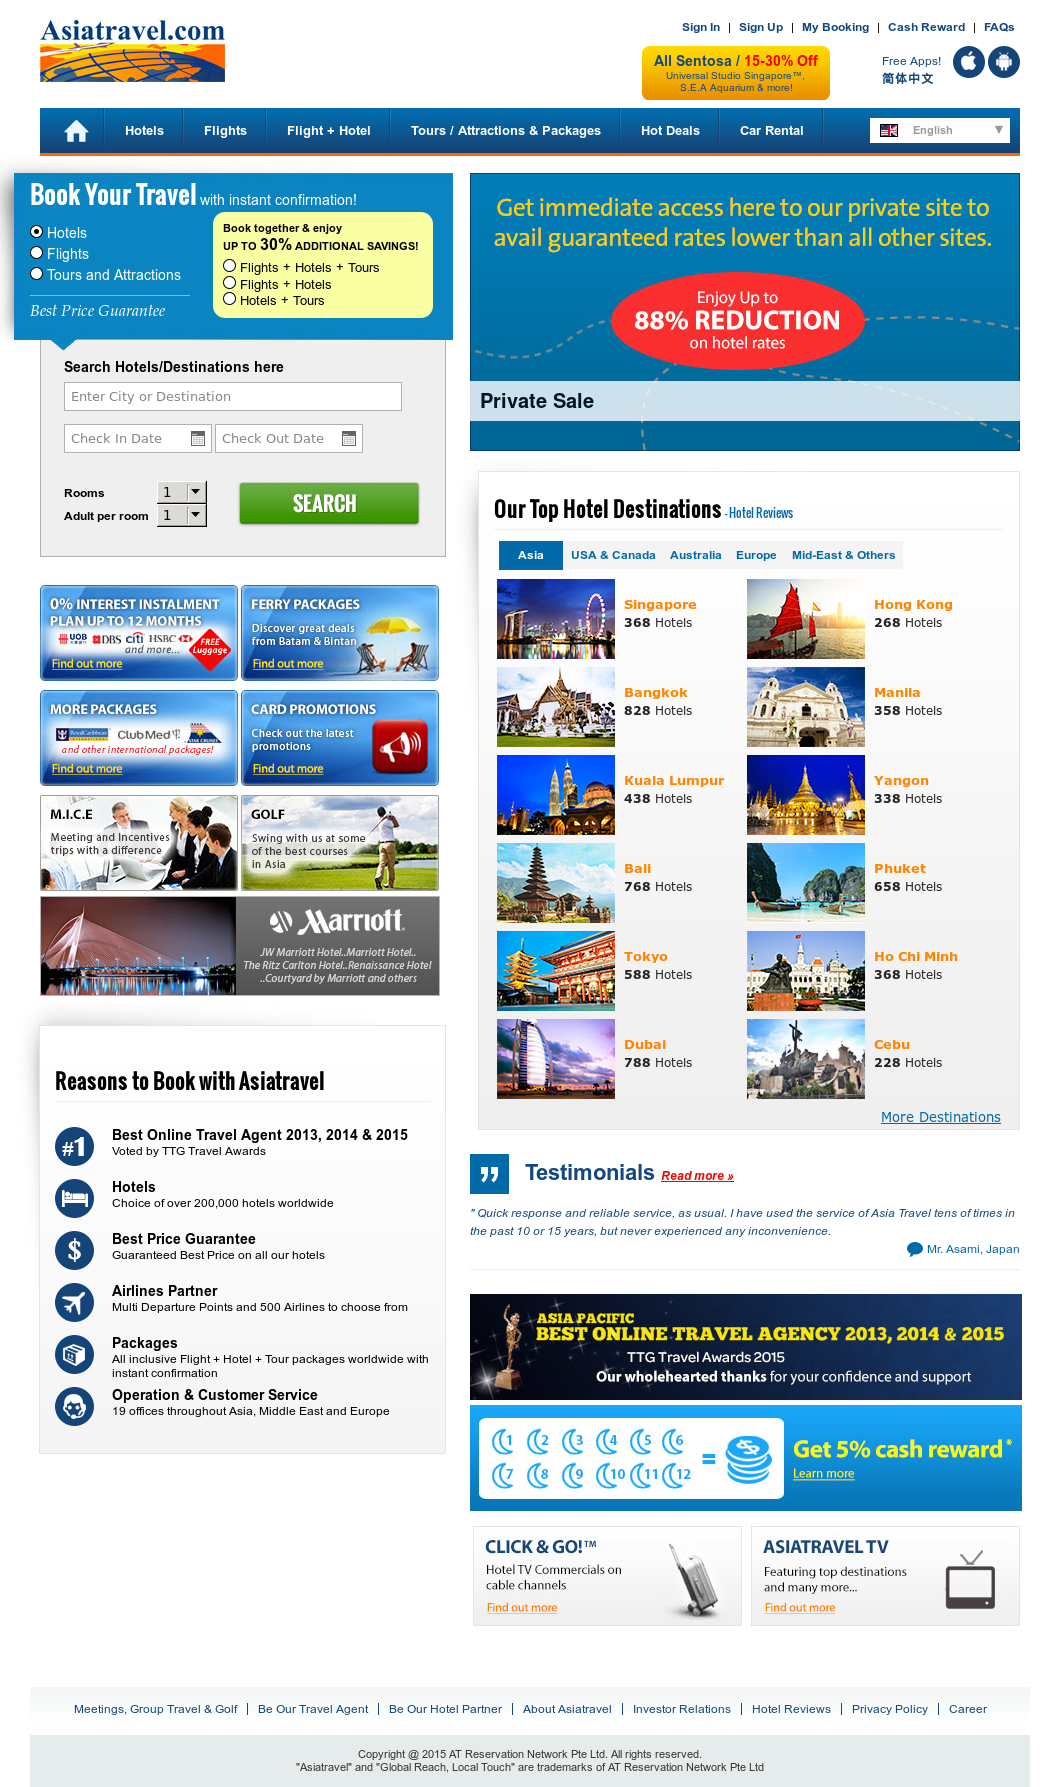 AsiaTravel Competitors, Revenue and Employees - Owler Company Profile